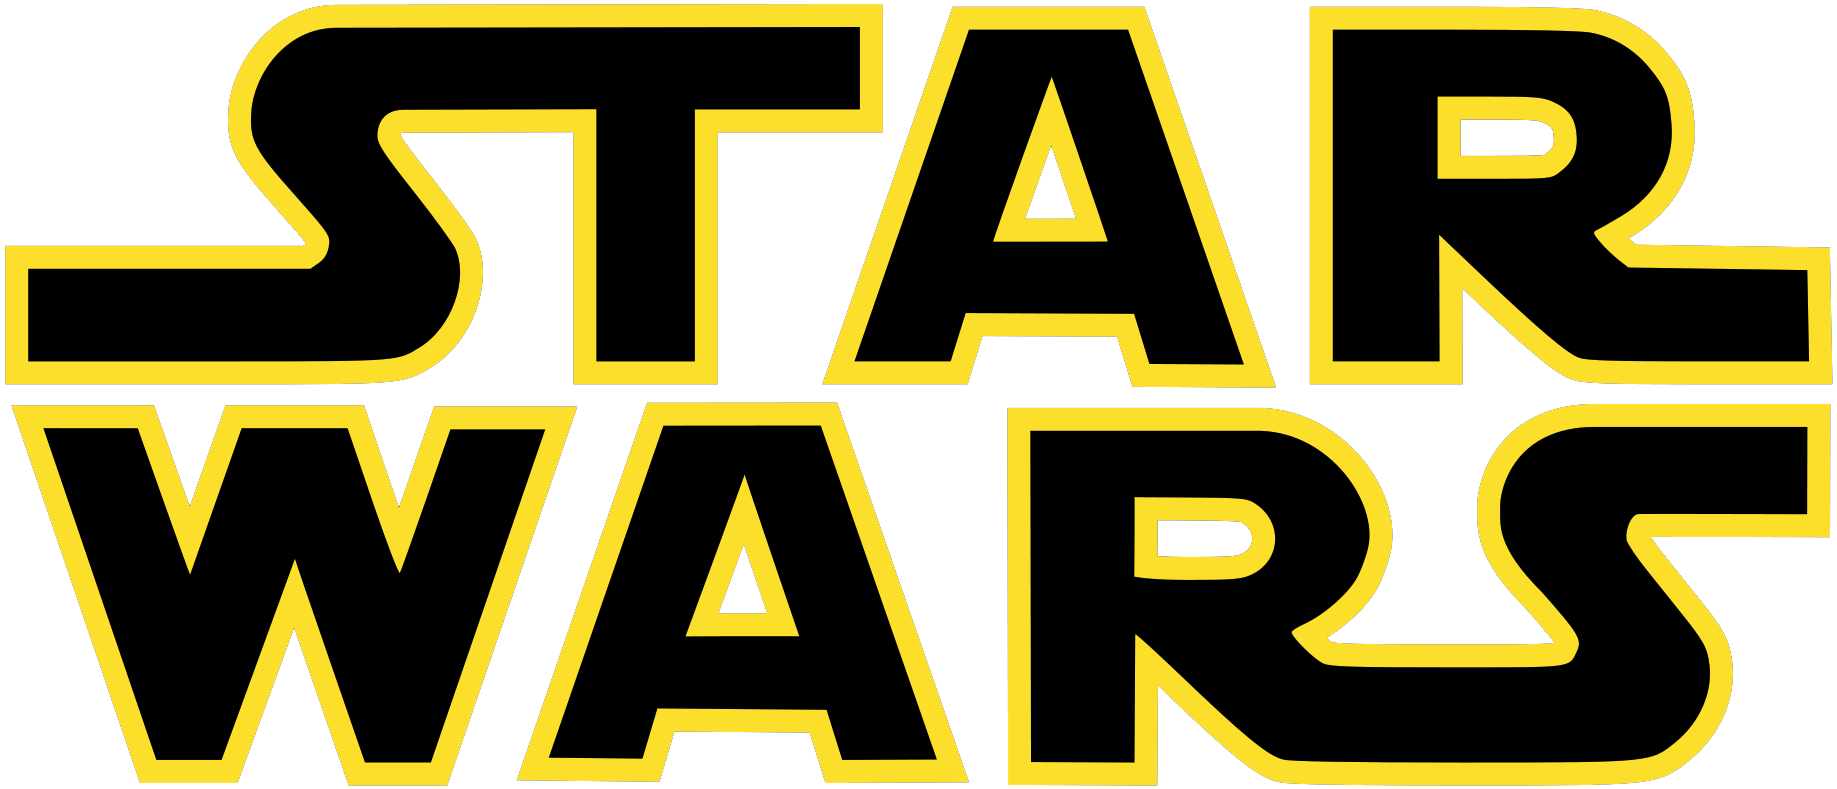 Logo Star Wars Png Transparent Background Free Download 46074 Freeiconspng